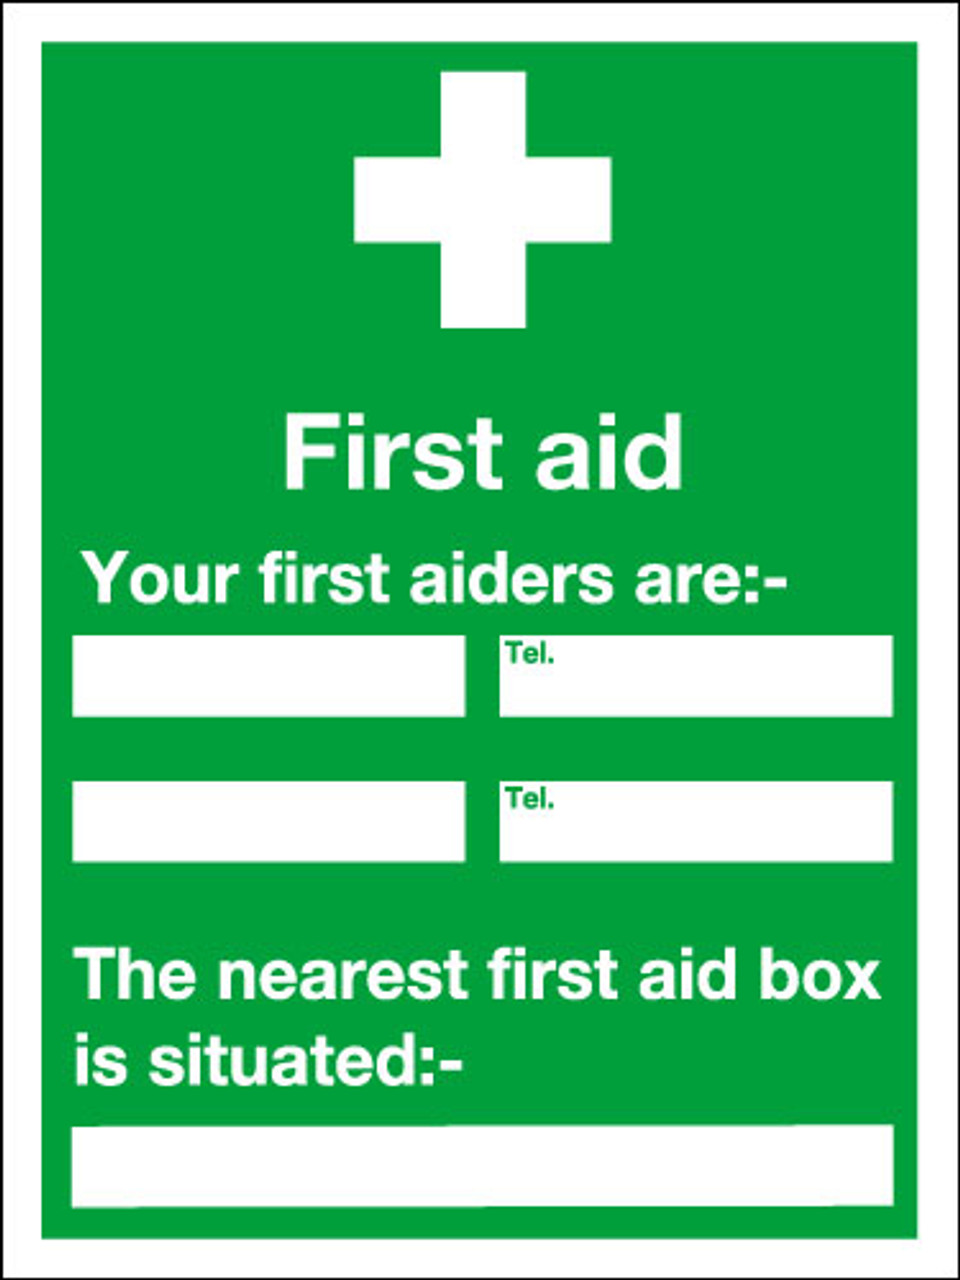 First aid Your first aiders are... Safety sign